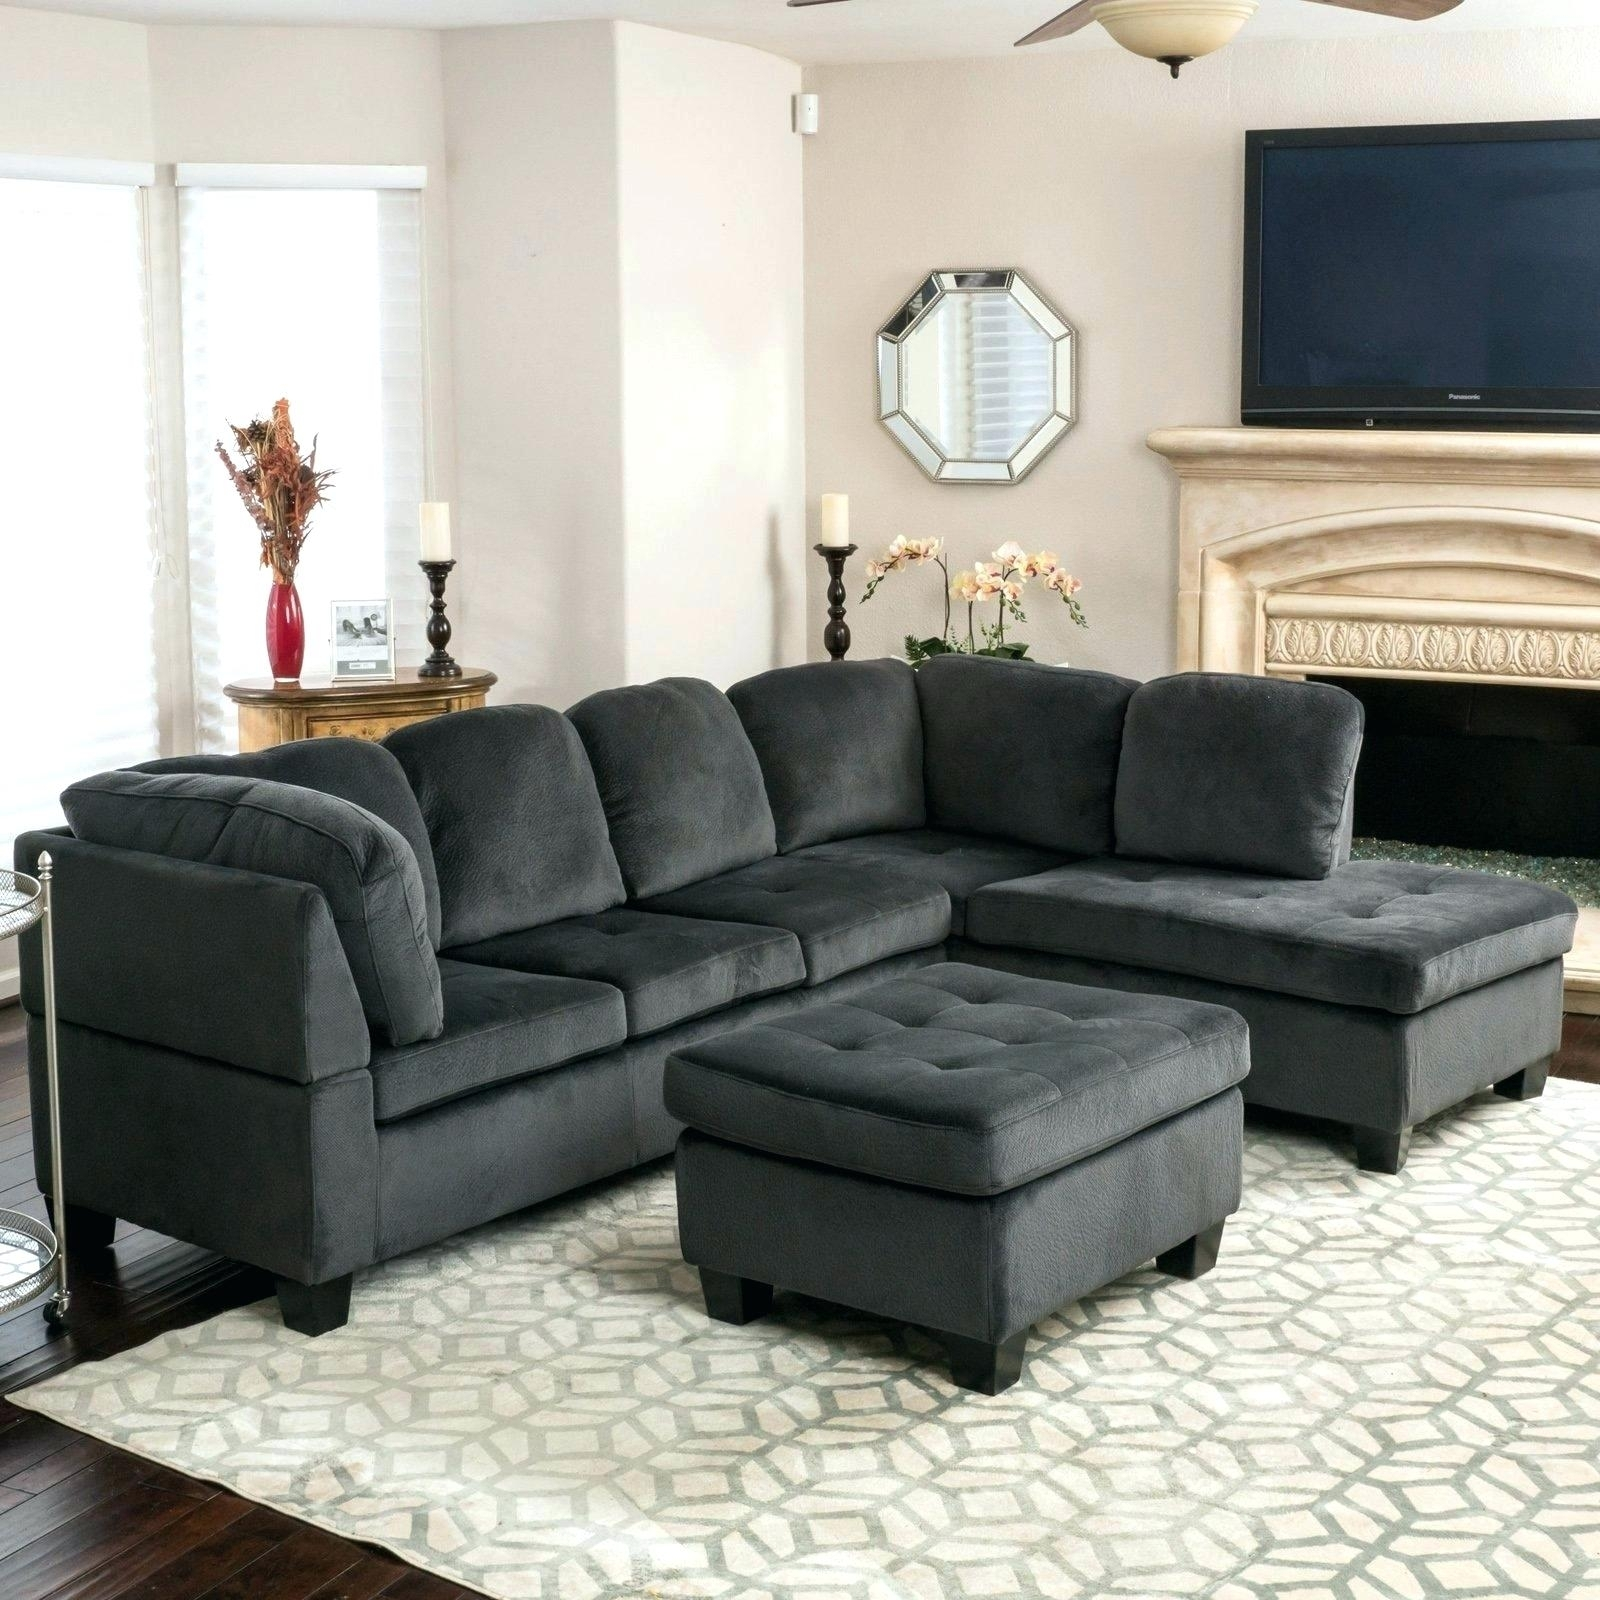 2018 popular canada sale sectional sofas for Sectional couch clearance sale